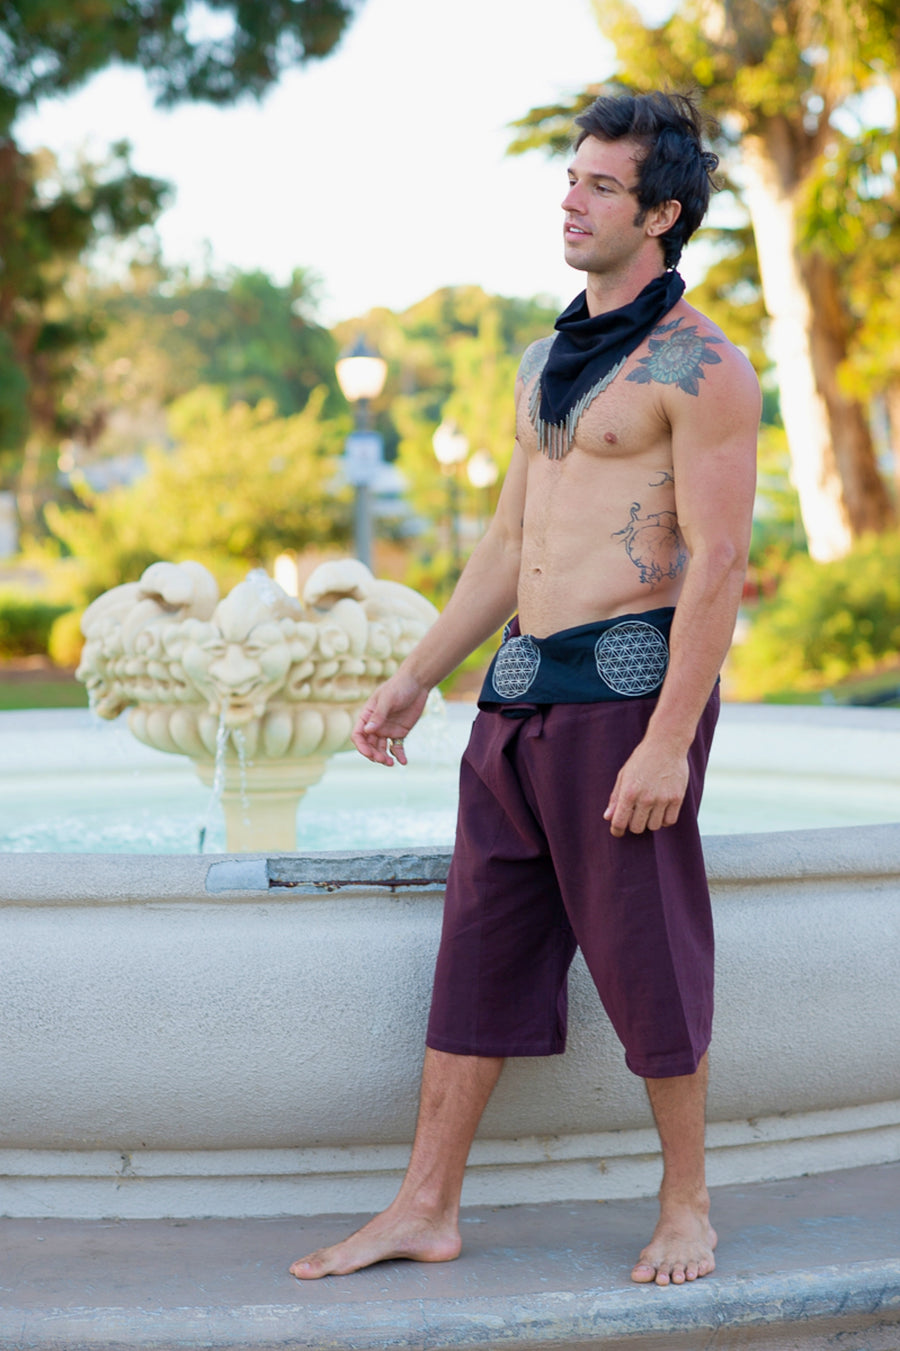 Flower of Life Fisherman Shorts in Brown-The High Thai-The High Thai-Yoga Pants-Harem Pants-Hippie Clothing-San Diego